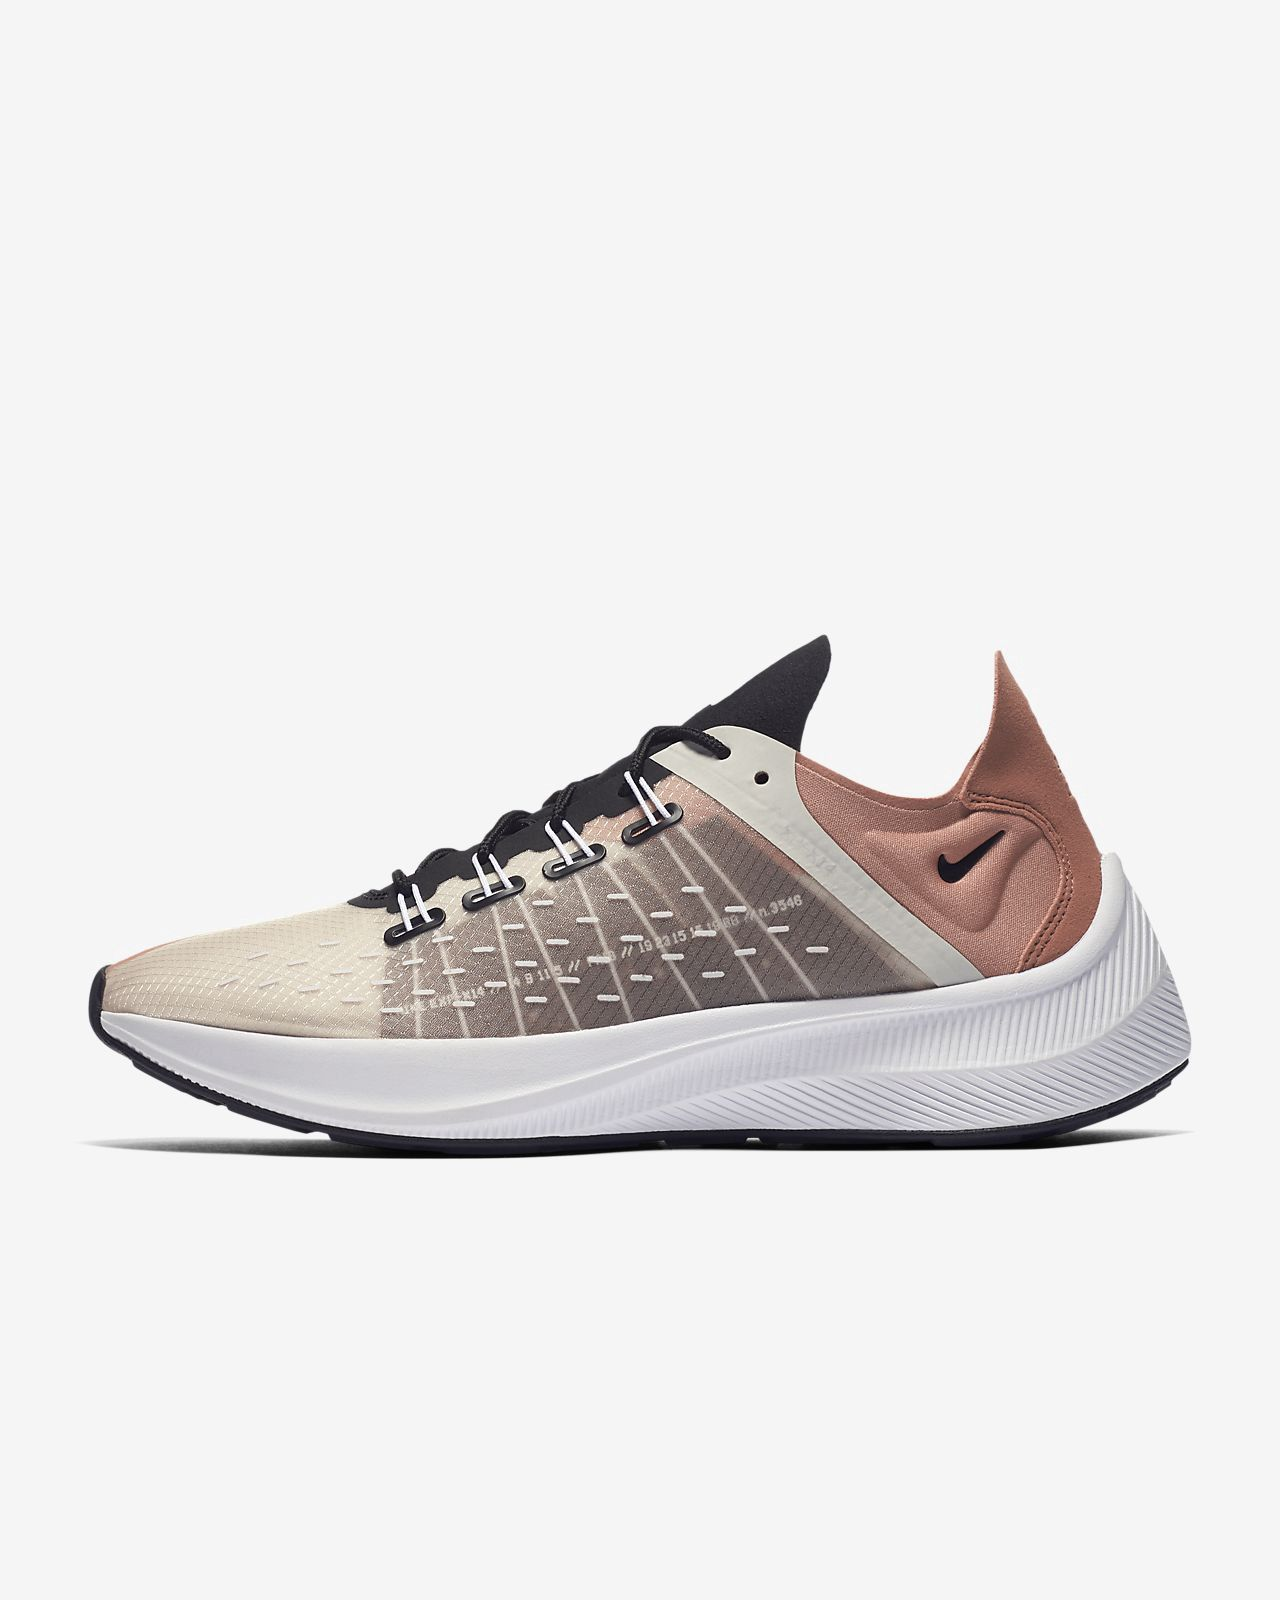 dbf63d2d0f3f Vans Shoes Sneakers shoes booties open toe.Clean Shoes Quotes shoes quotes  beauty.Adidas Shoes Pharrell Williams.